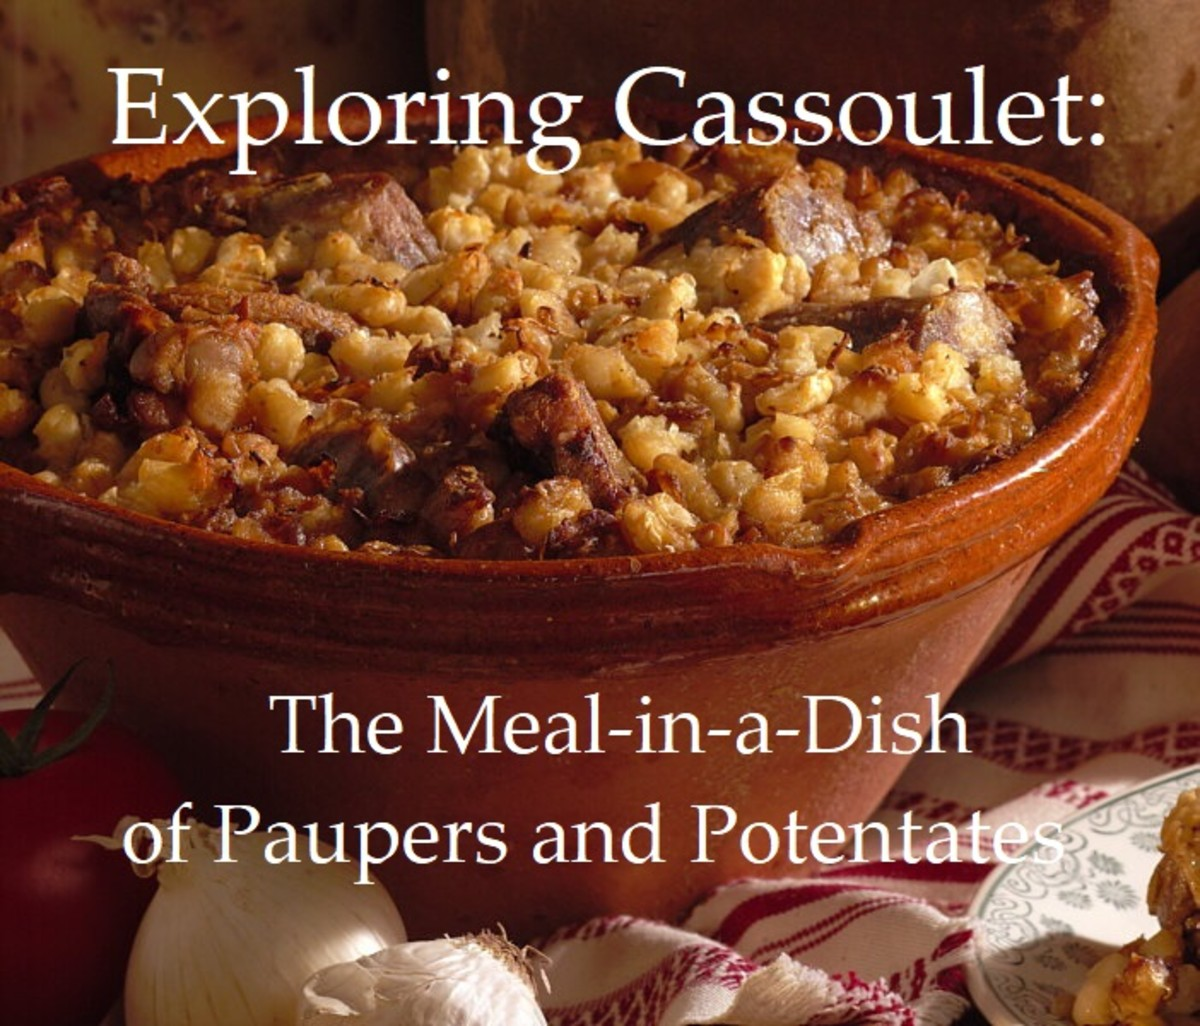 Learn more about the history of cassoulet and find three recipes, including a budget-friendly version.